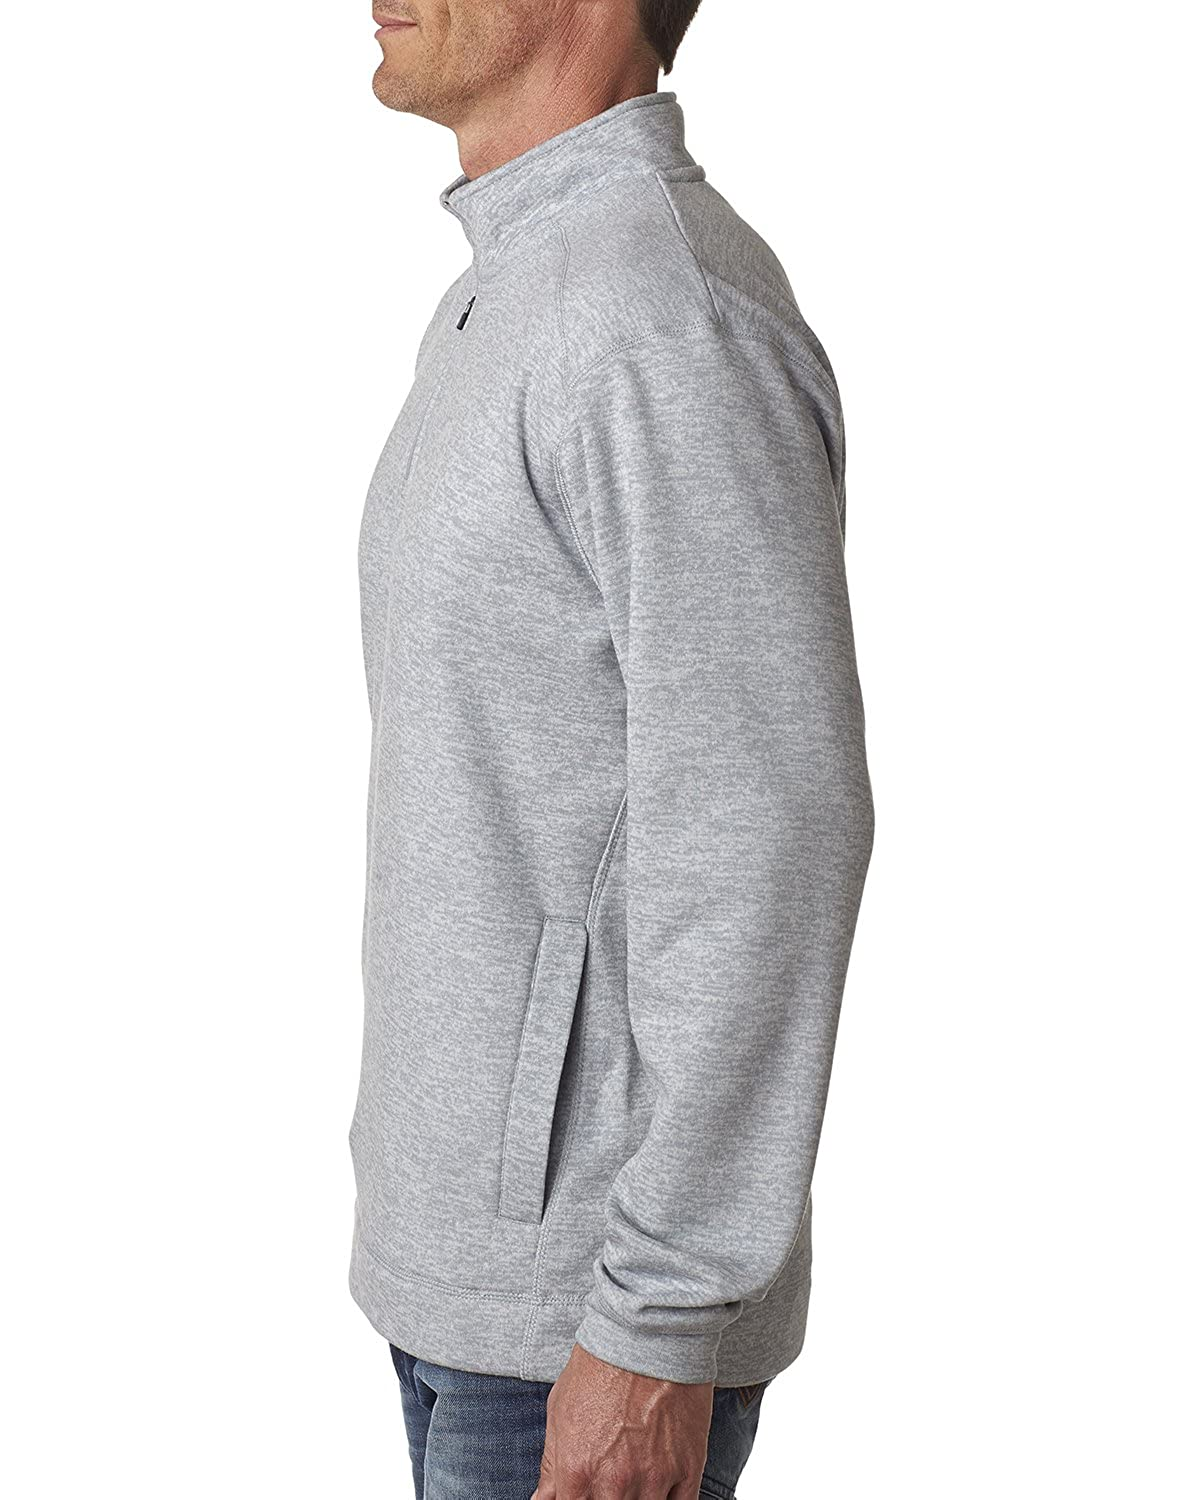 America Mens Cosmic Fleece 1//4 Zip Pullover Sweatshirt-8614 J